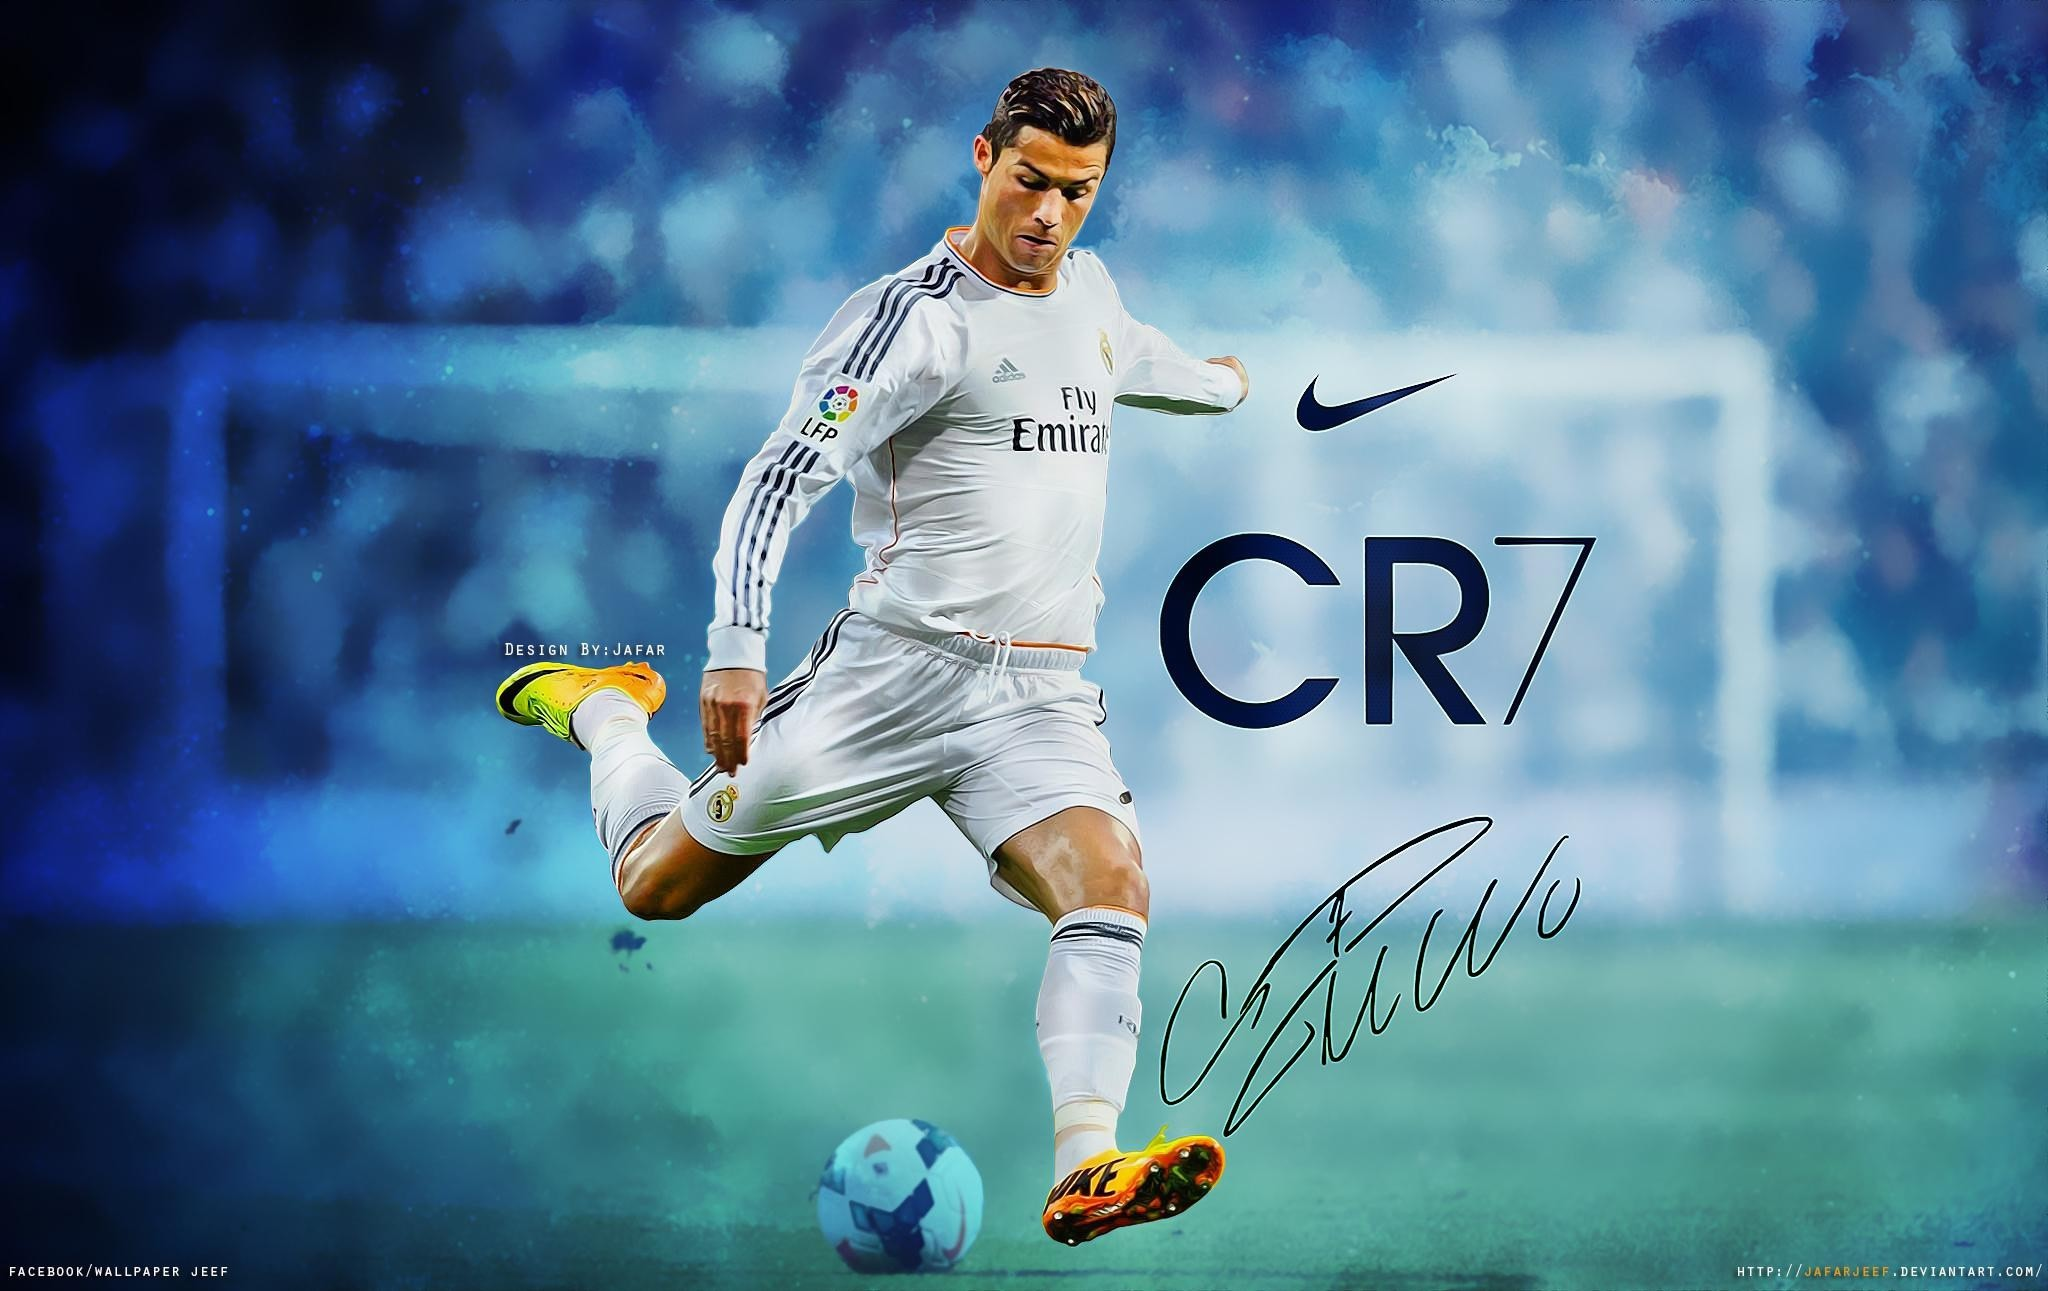 Res: 2048x1291, Widescreen, Free Wallpapers, Best Soccer Player Ever, Real Madrid, Sport,  Ball, Hala Madrid, Comandante, 2048×1291 Wallpaper HD